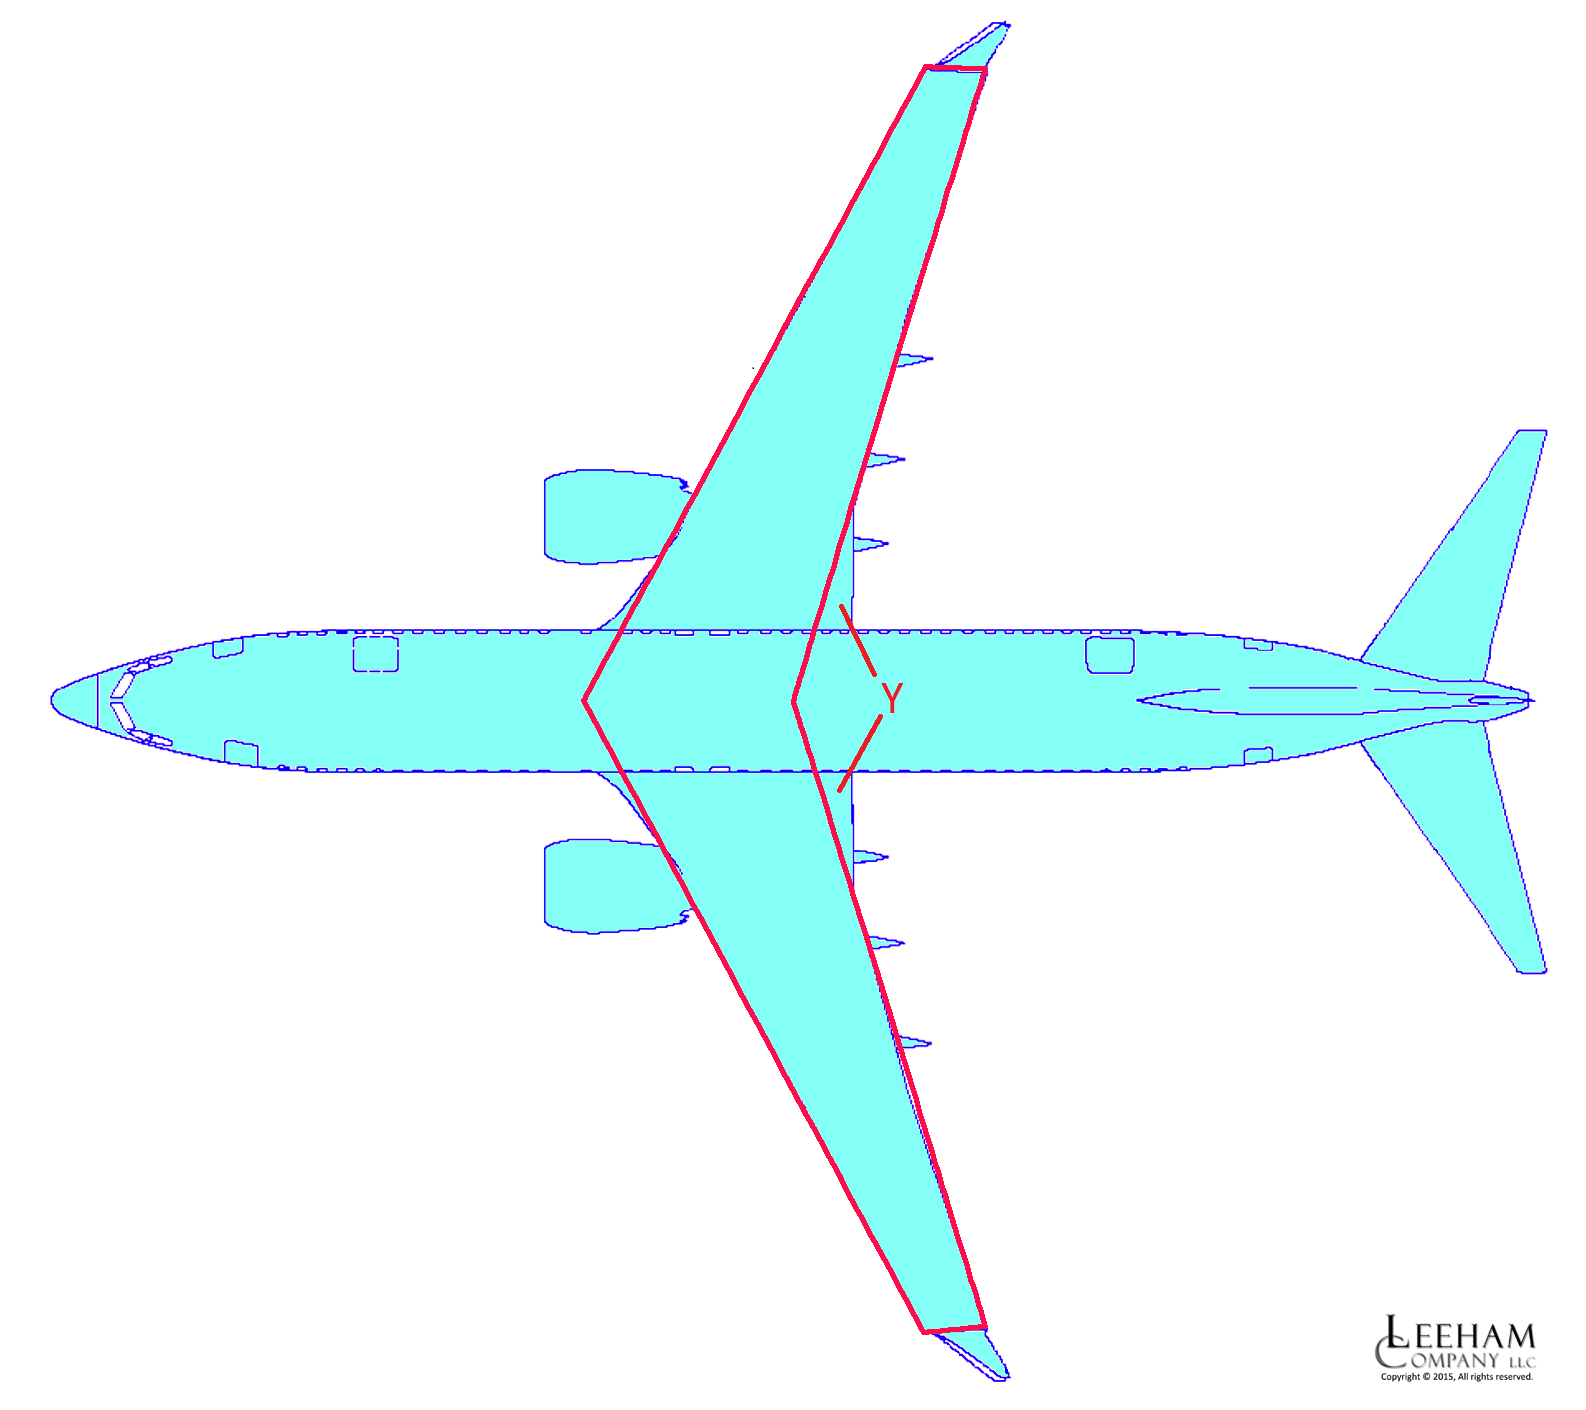 Fundamentals of airliner performance